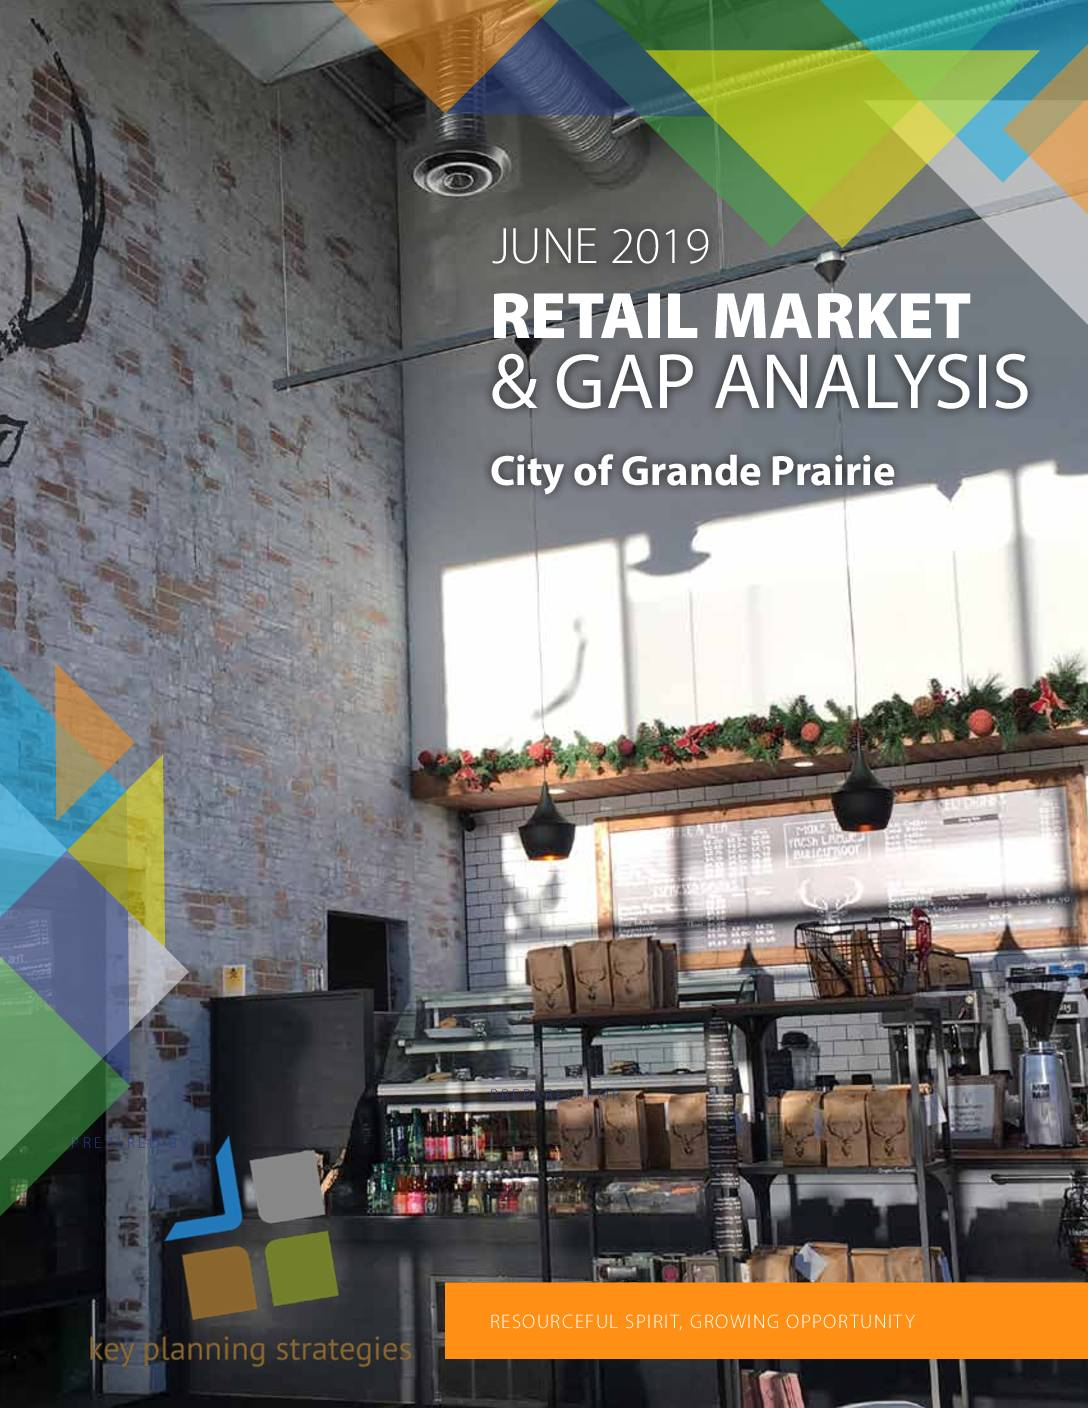 Grande Prairie – Retail Gap Analysis 2019